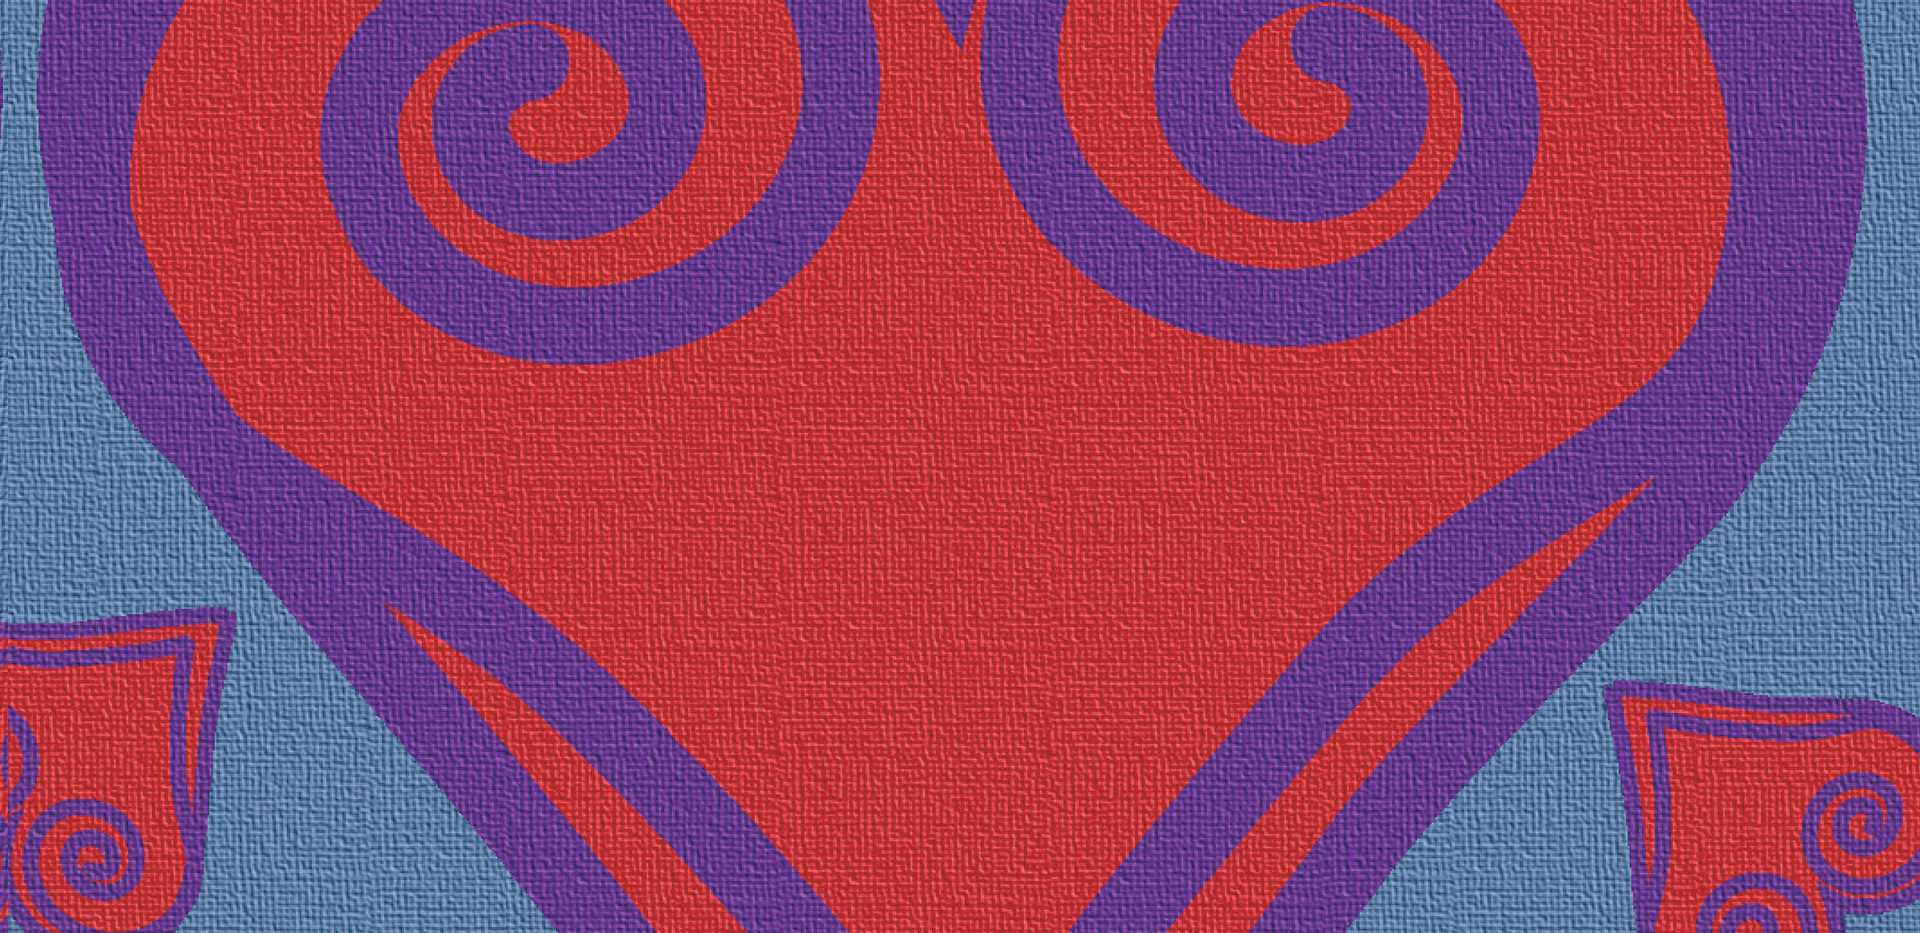 TapestryOfTheHeartCOVER_Page_2.jpg